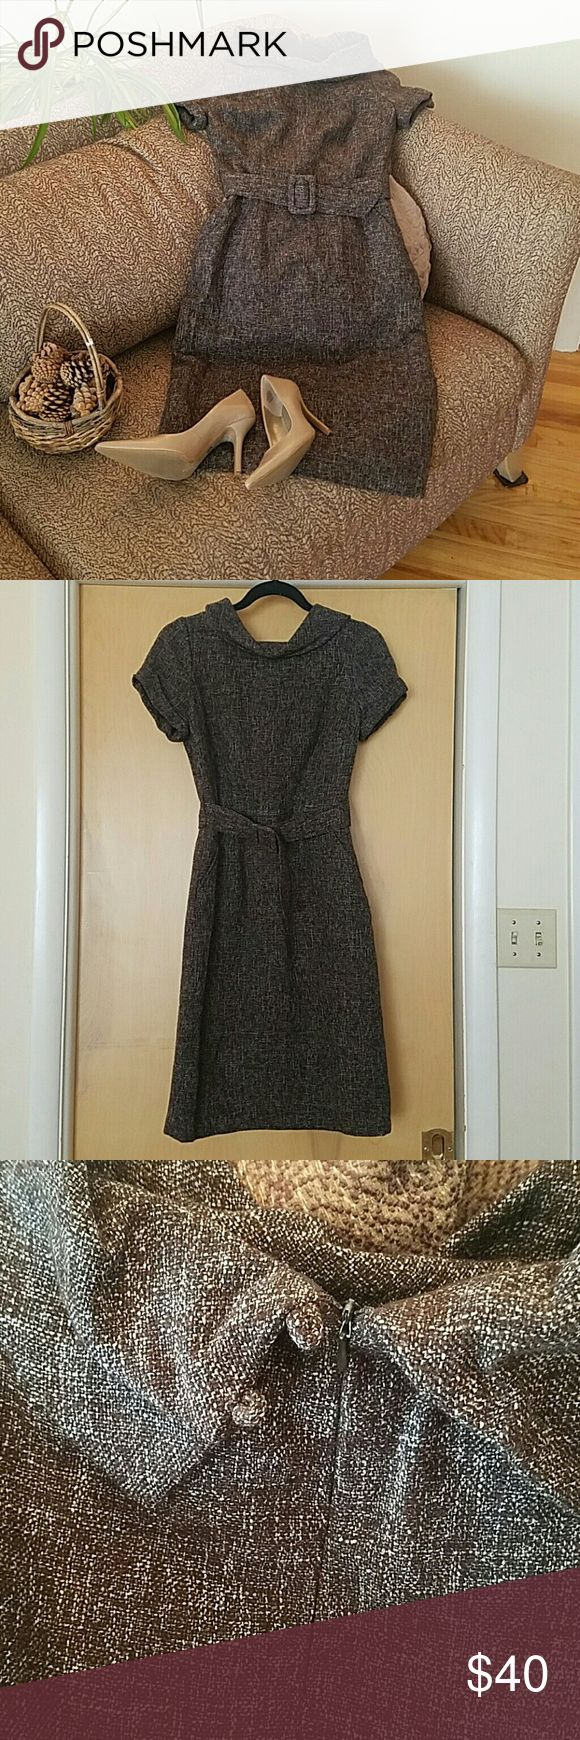 Banana Republic Tweed Dress, NWOT This dress has class! Simple and elegant, it's perfect for a business trip, dinner or day at the office. Side pockets give it added utility. I especially love the little buttons on the back. Banana Republic Dresses